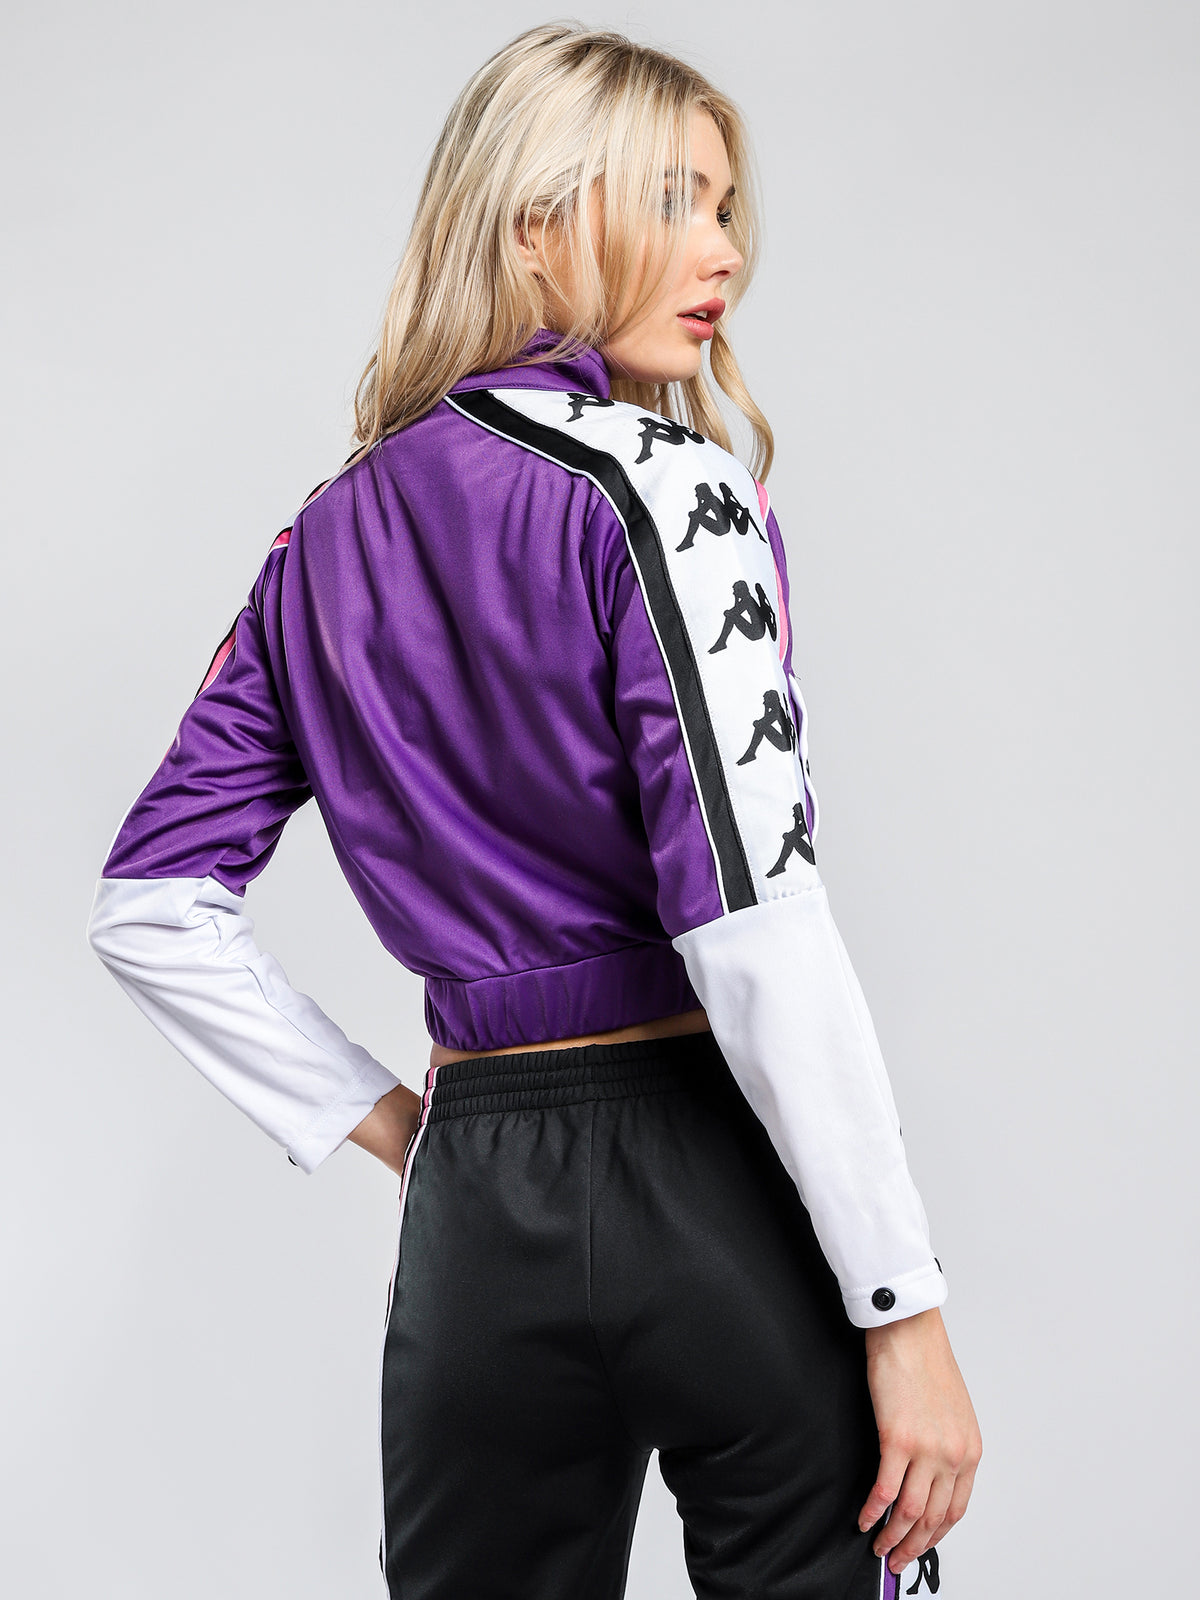 222 Banda 10 Antey Track Jacket in Violet White & Black